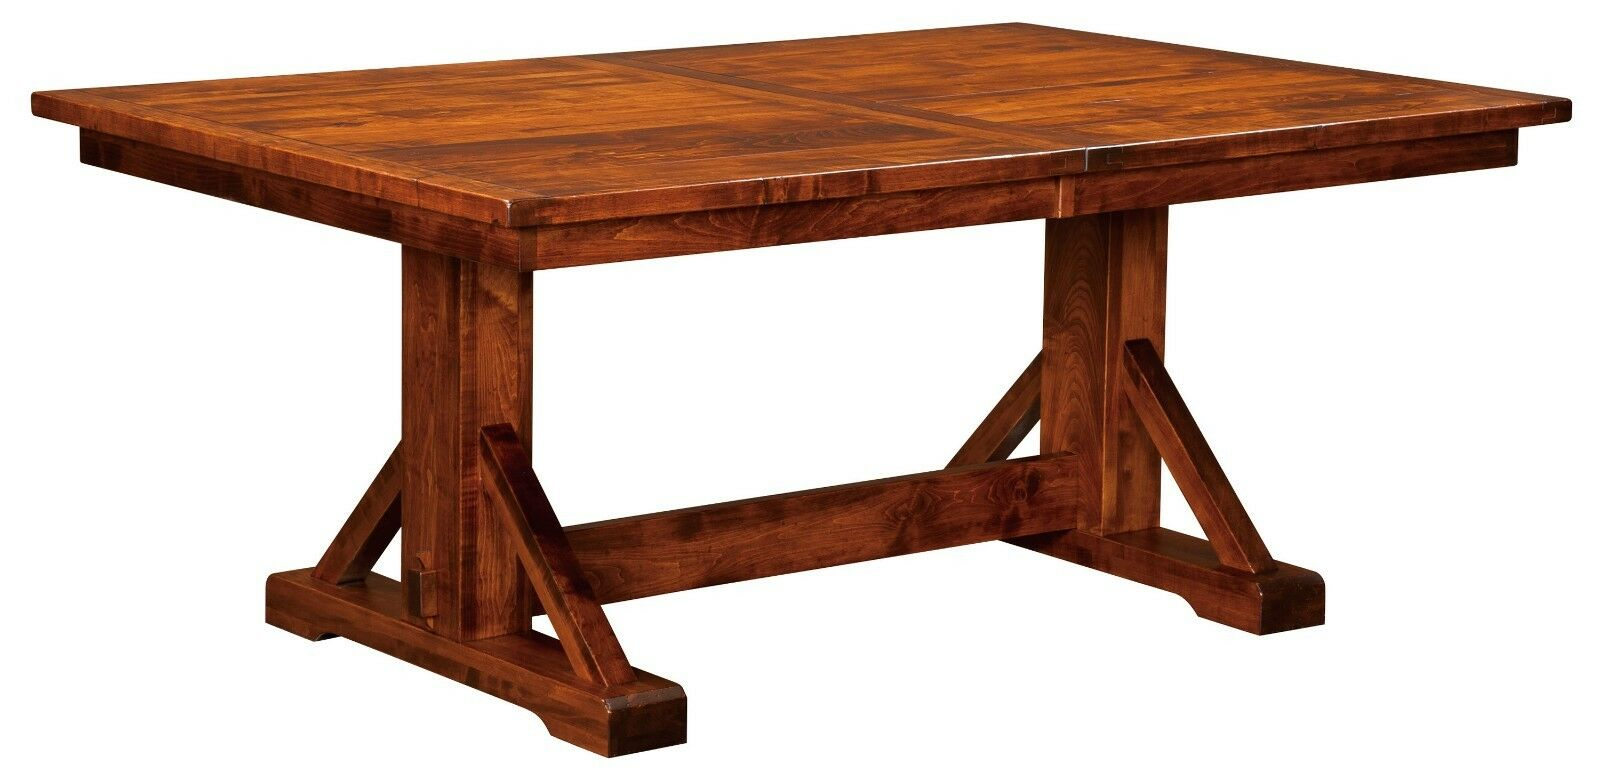 Amish Rustic Plank Trestle Dining Table Rectangle Solid Wood